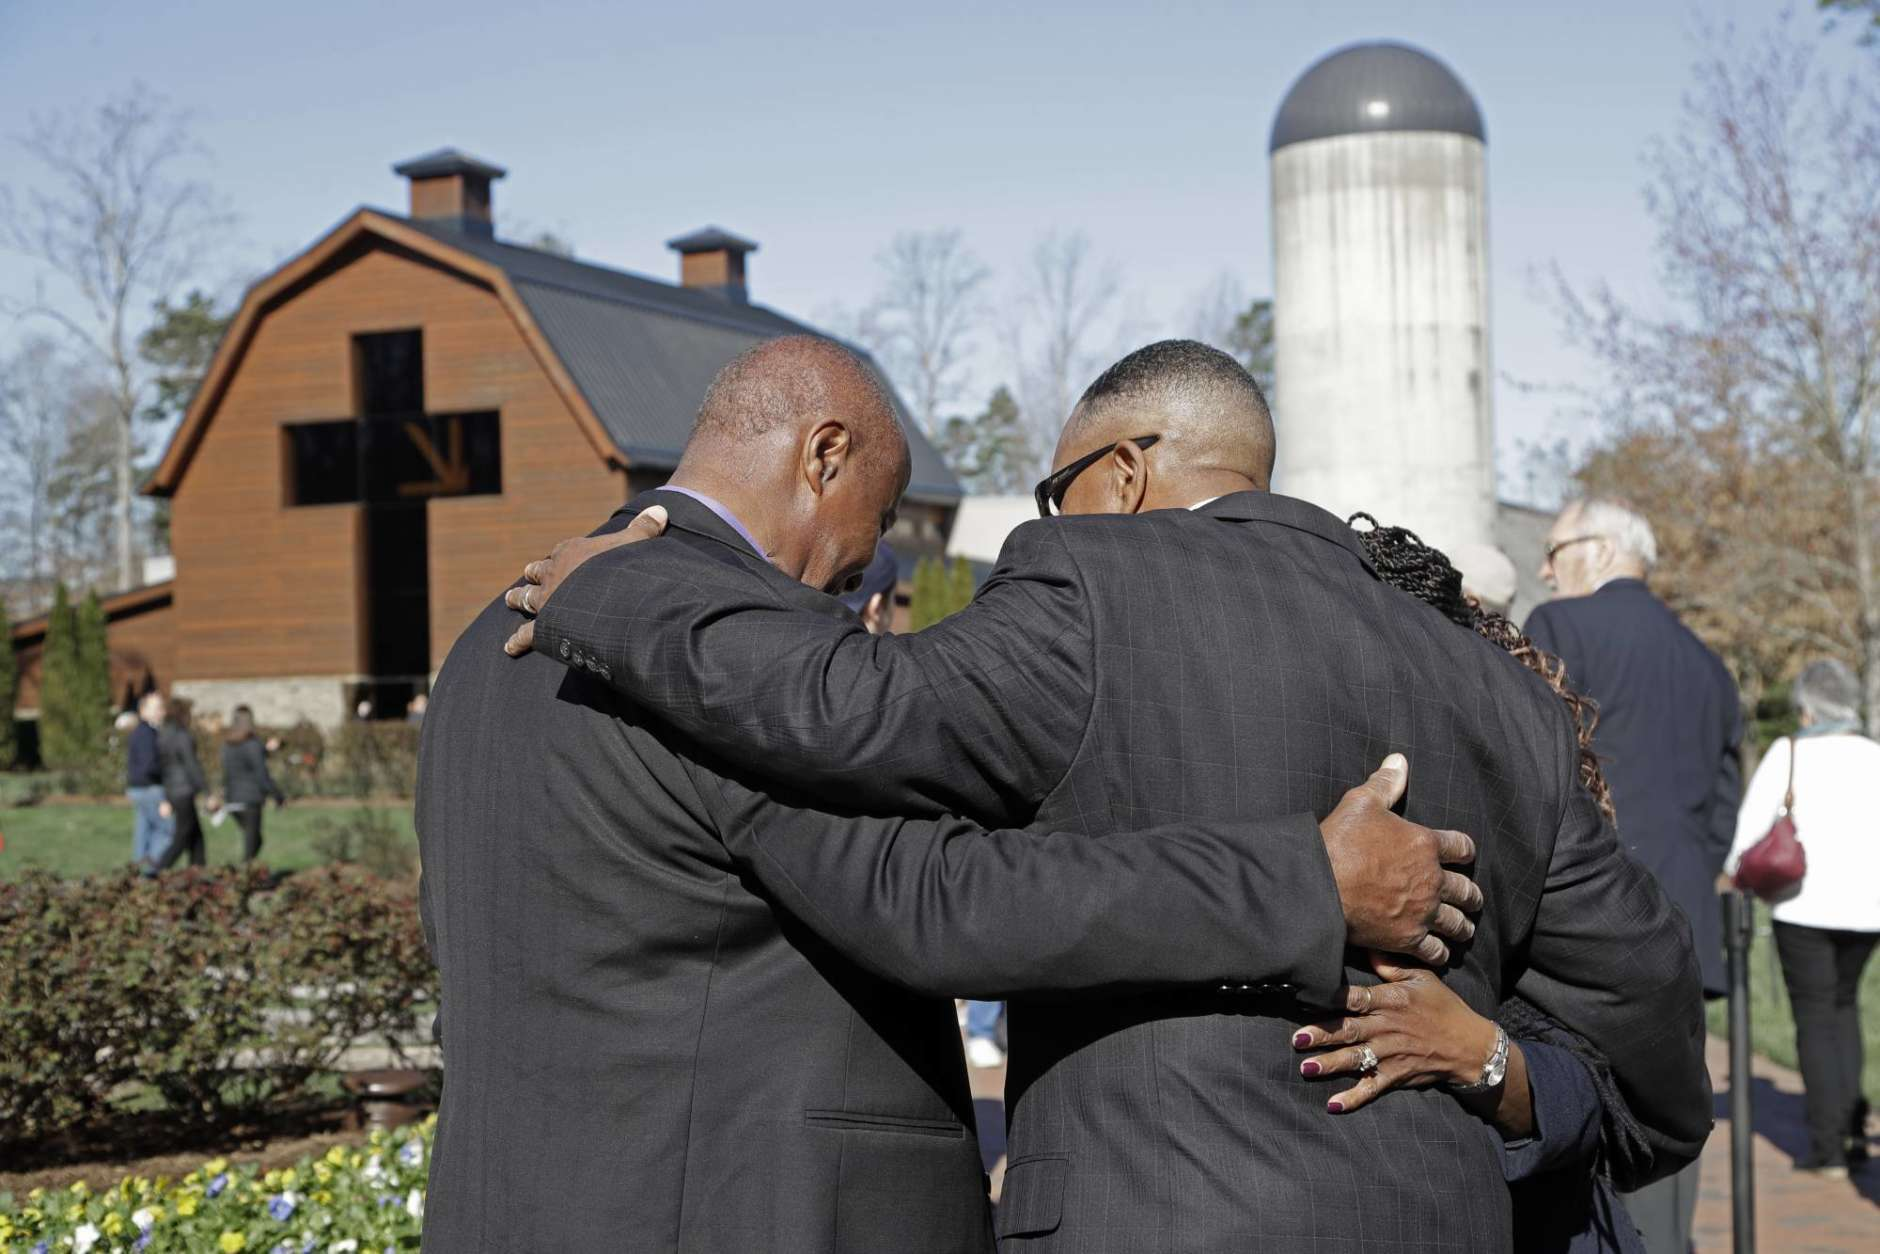 A group of people pray after paying their respects to Rev. Billy Graham during a public viewing at the Billy Graham Library in Charlotte, N.C., Tuesday, Feb. 27, 2018. (AP Photo/Chuck Burton)